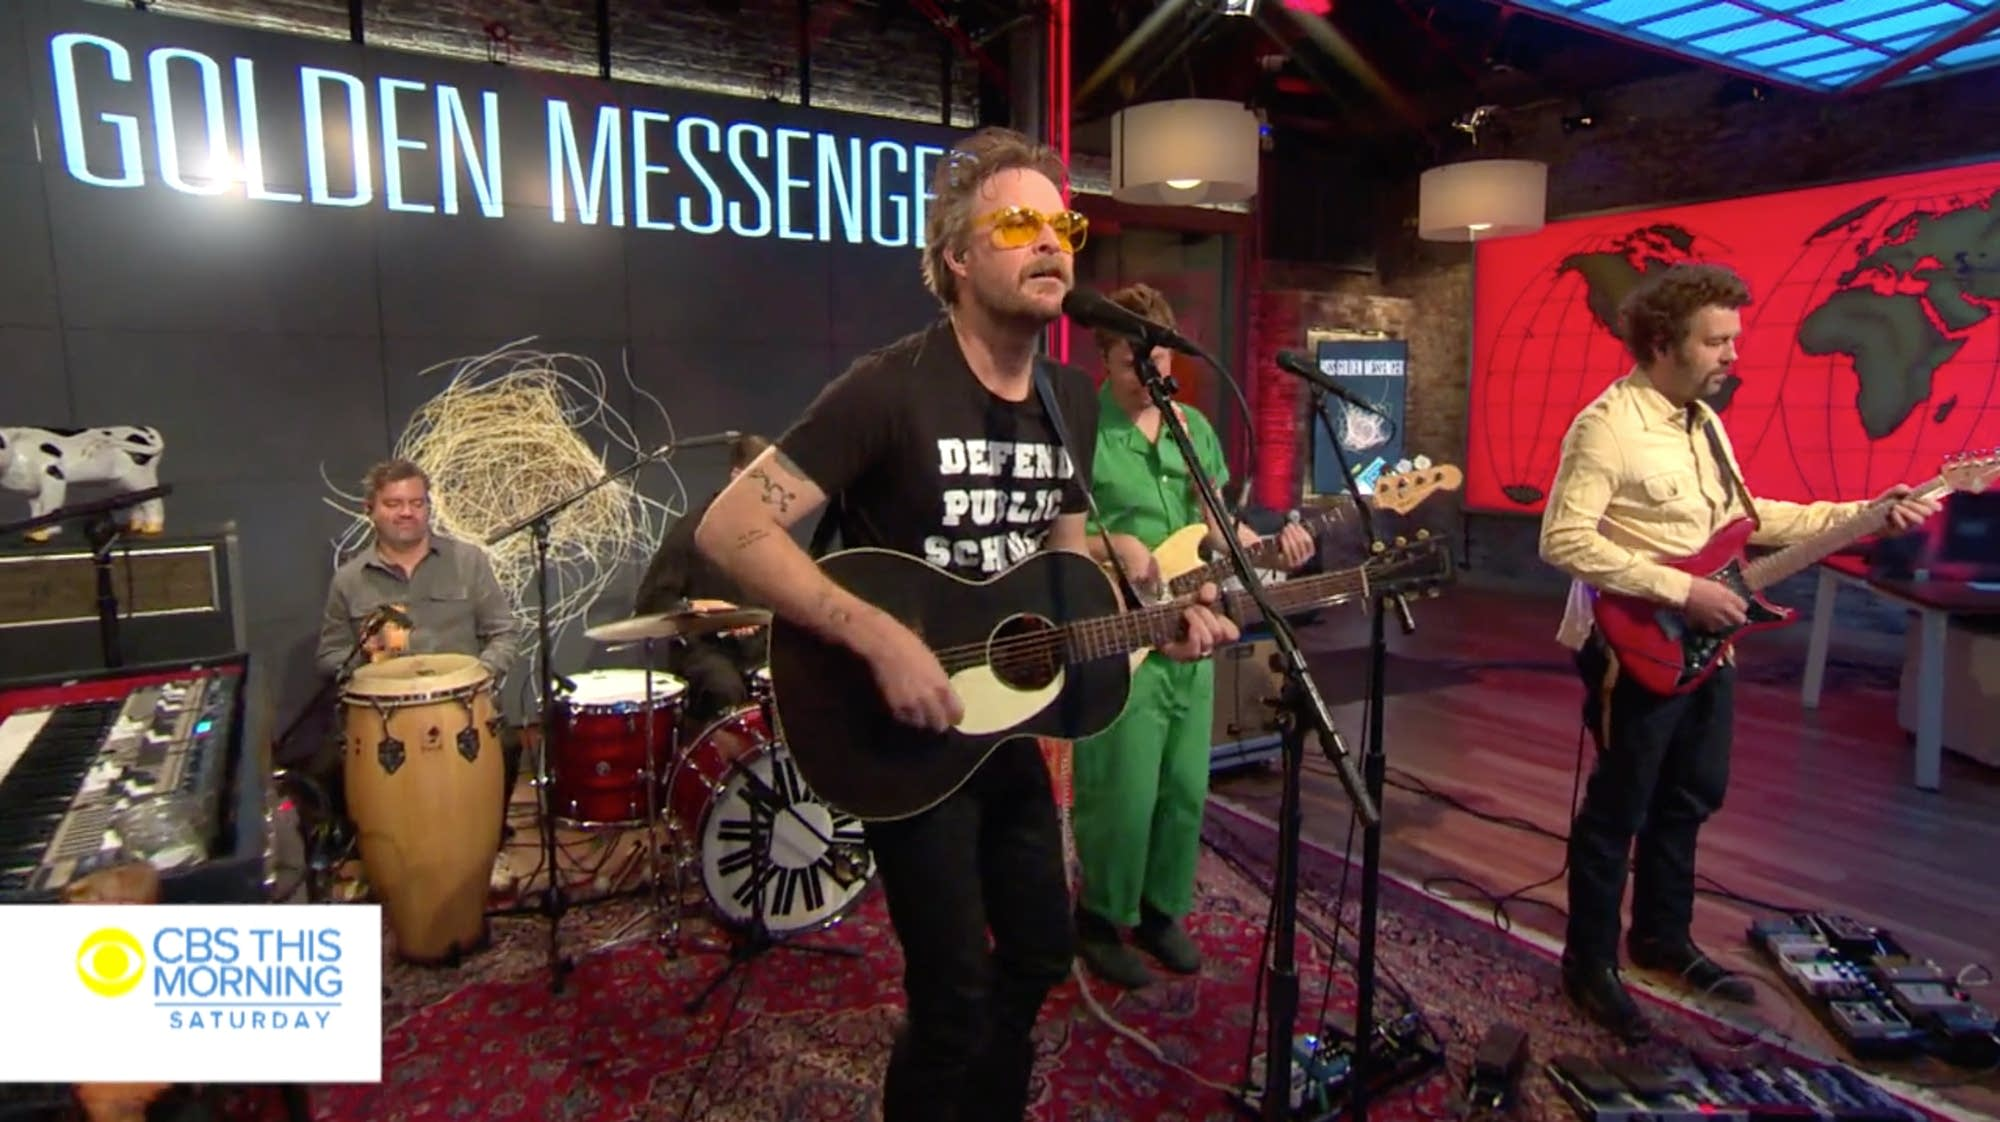 Hiss Golden Messenger performing on 'CBS This Morning' Saturday